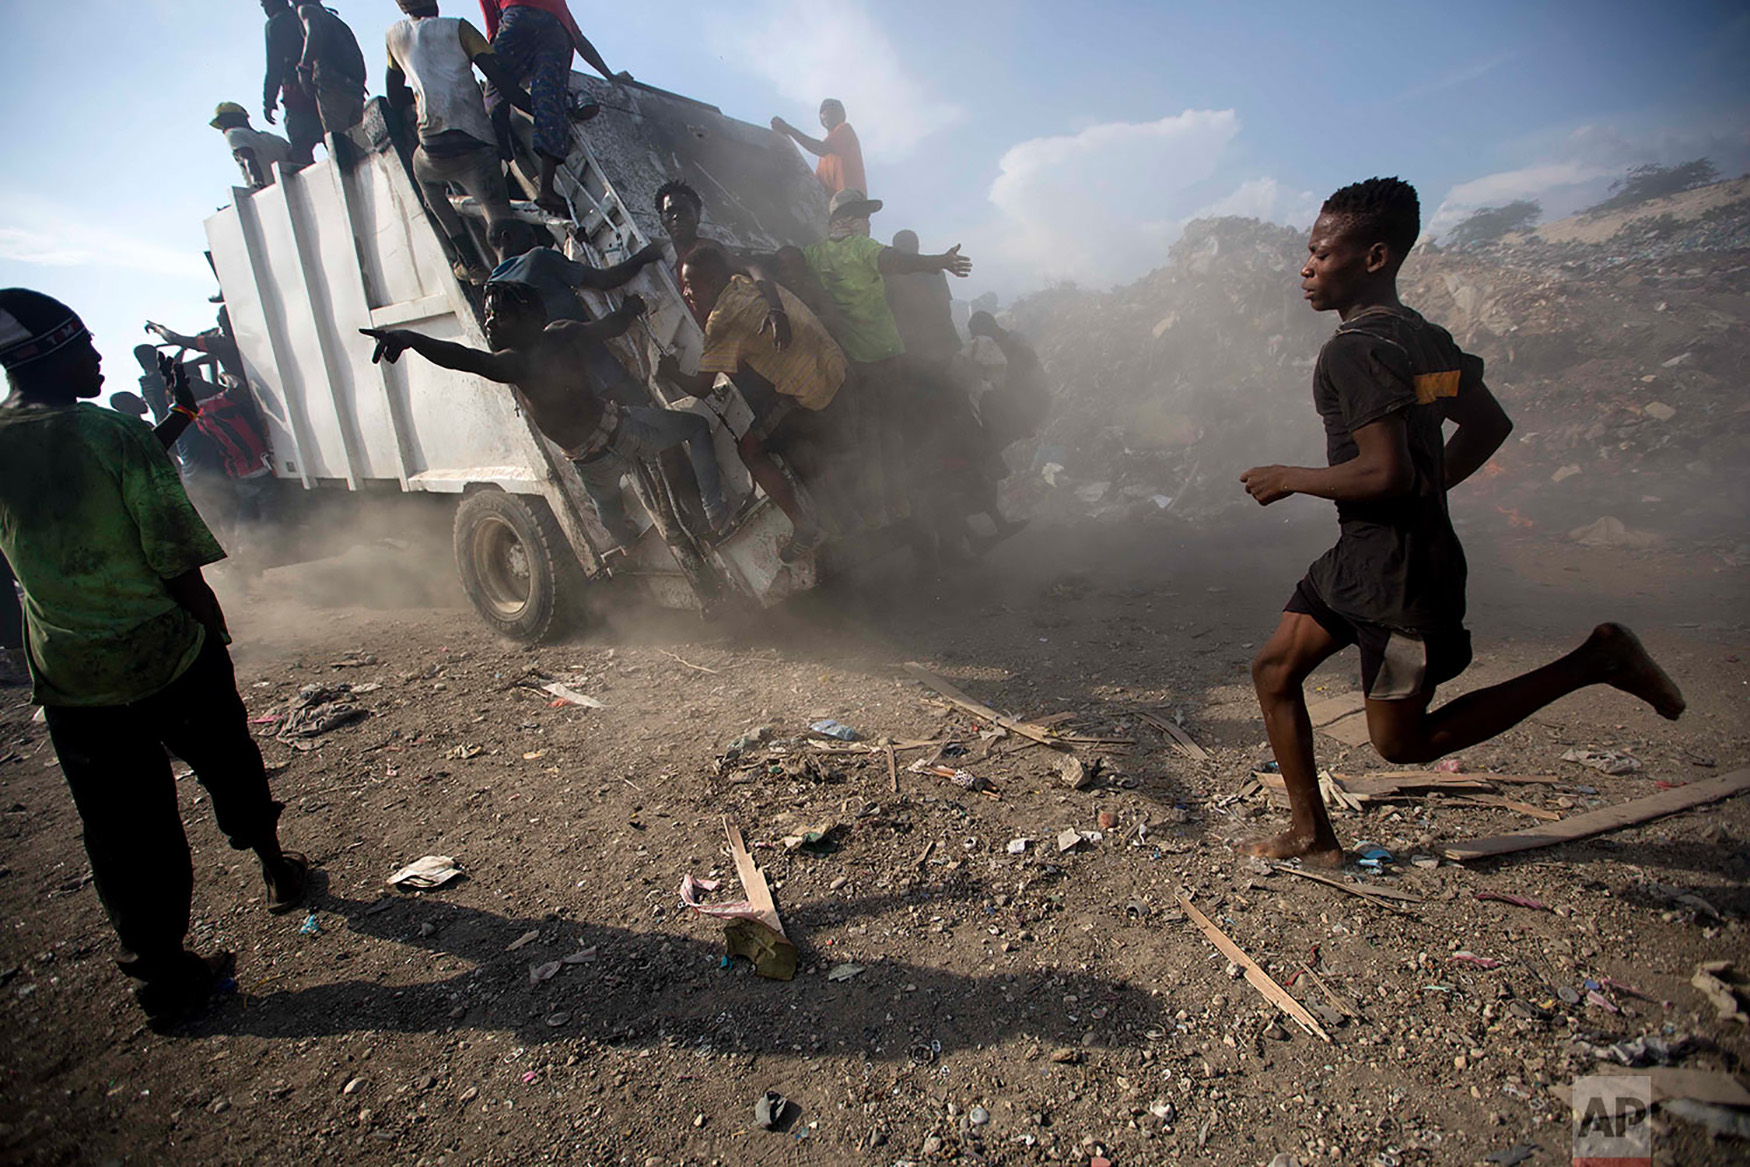 Scavengers climb on a trash truck arriving to unload at the Truitier landfill in the Cite Soleil slum of Port-au-Prince, Haiti, Aug. 28, 2018. Here in Cite Soleil, poisonous waste decomposes into the soil, seeping into nearby water sources and exacerbating dismal sanitary conditions. (AP Photo/Dieu Nalio Chery)